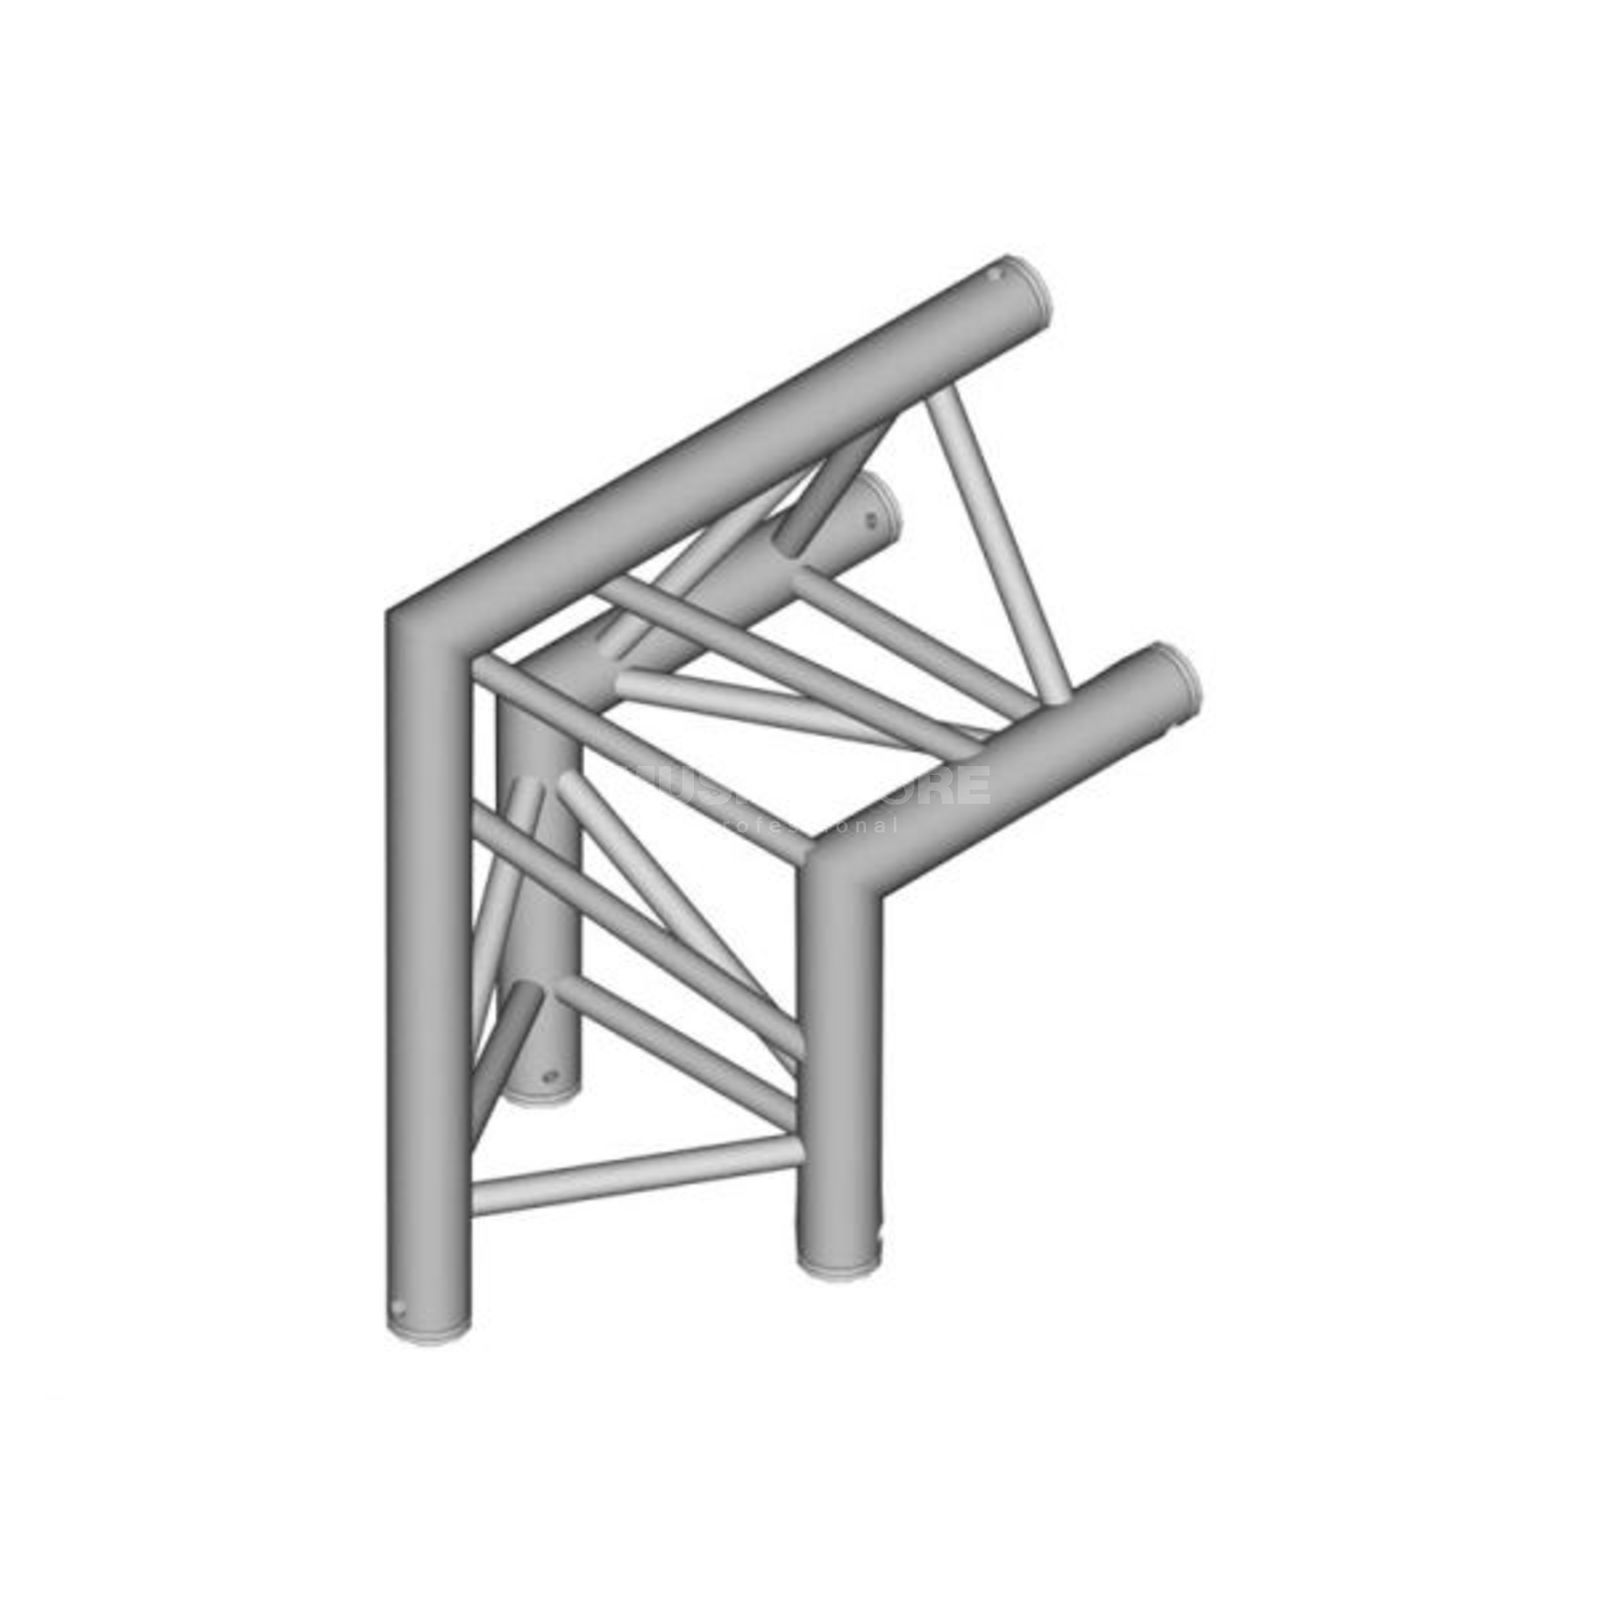 DURATRUSS DT 33-C24-D90 3-Point Truss 90° Corner Produktbillede